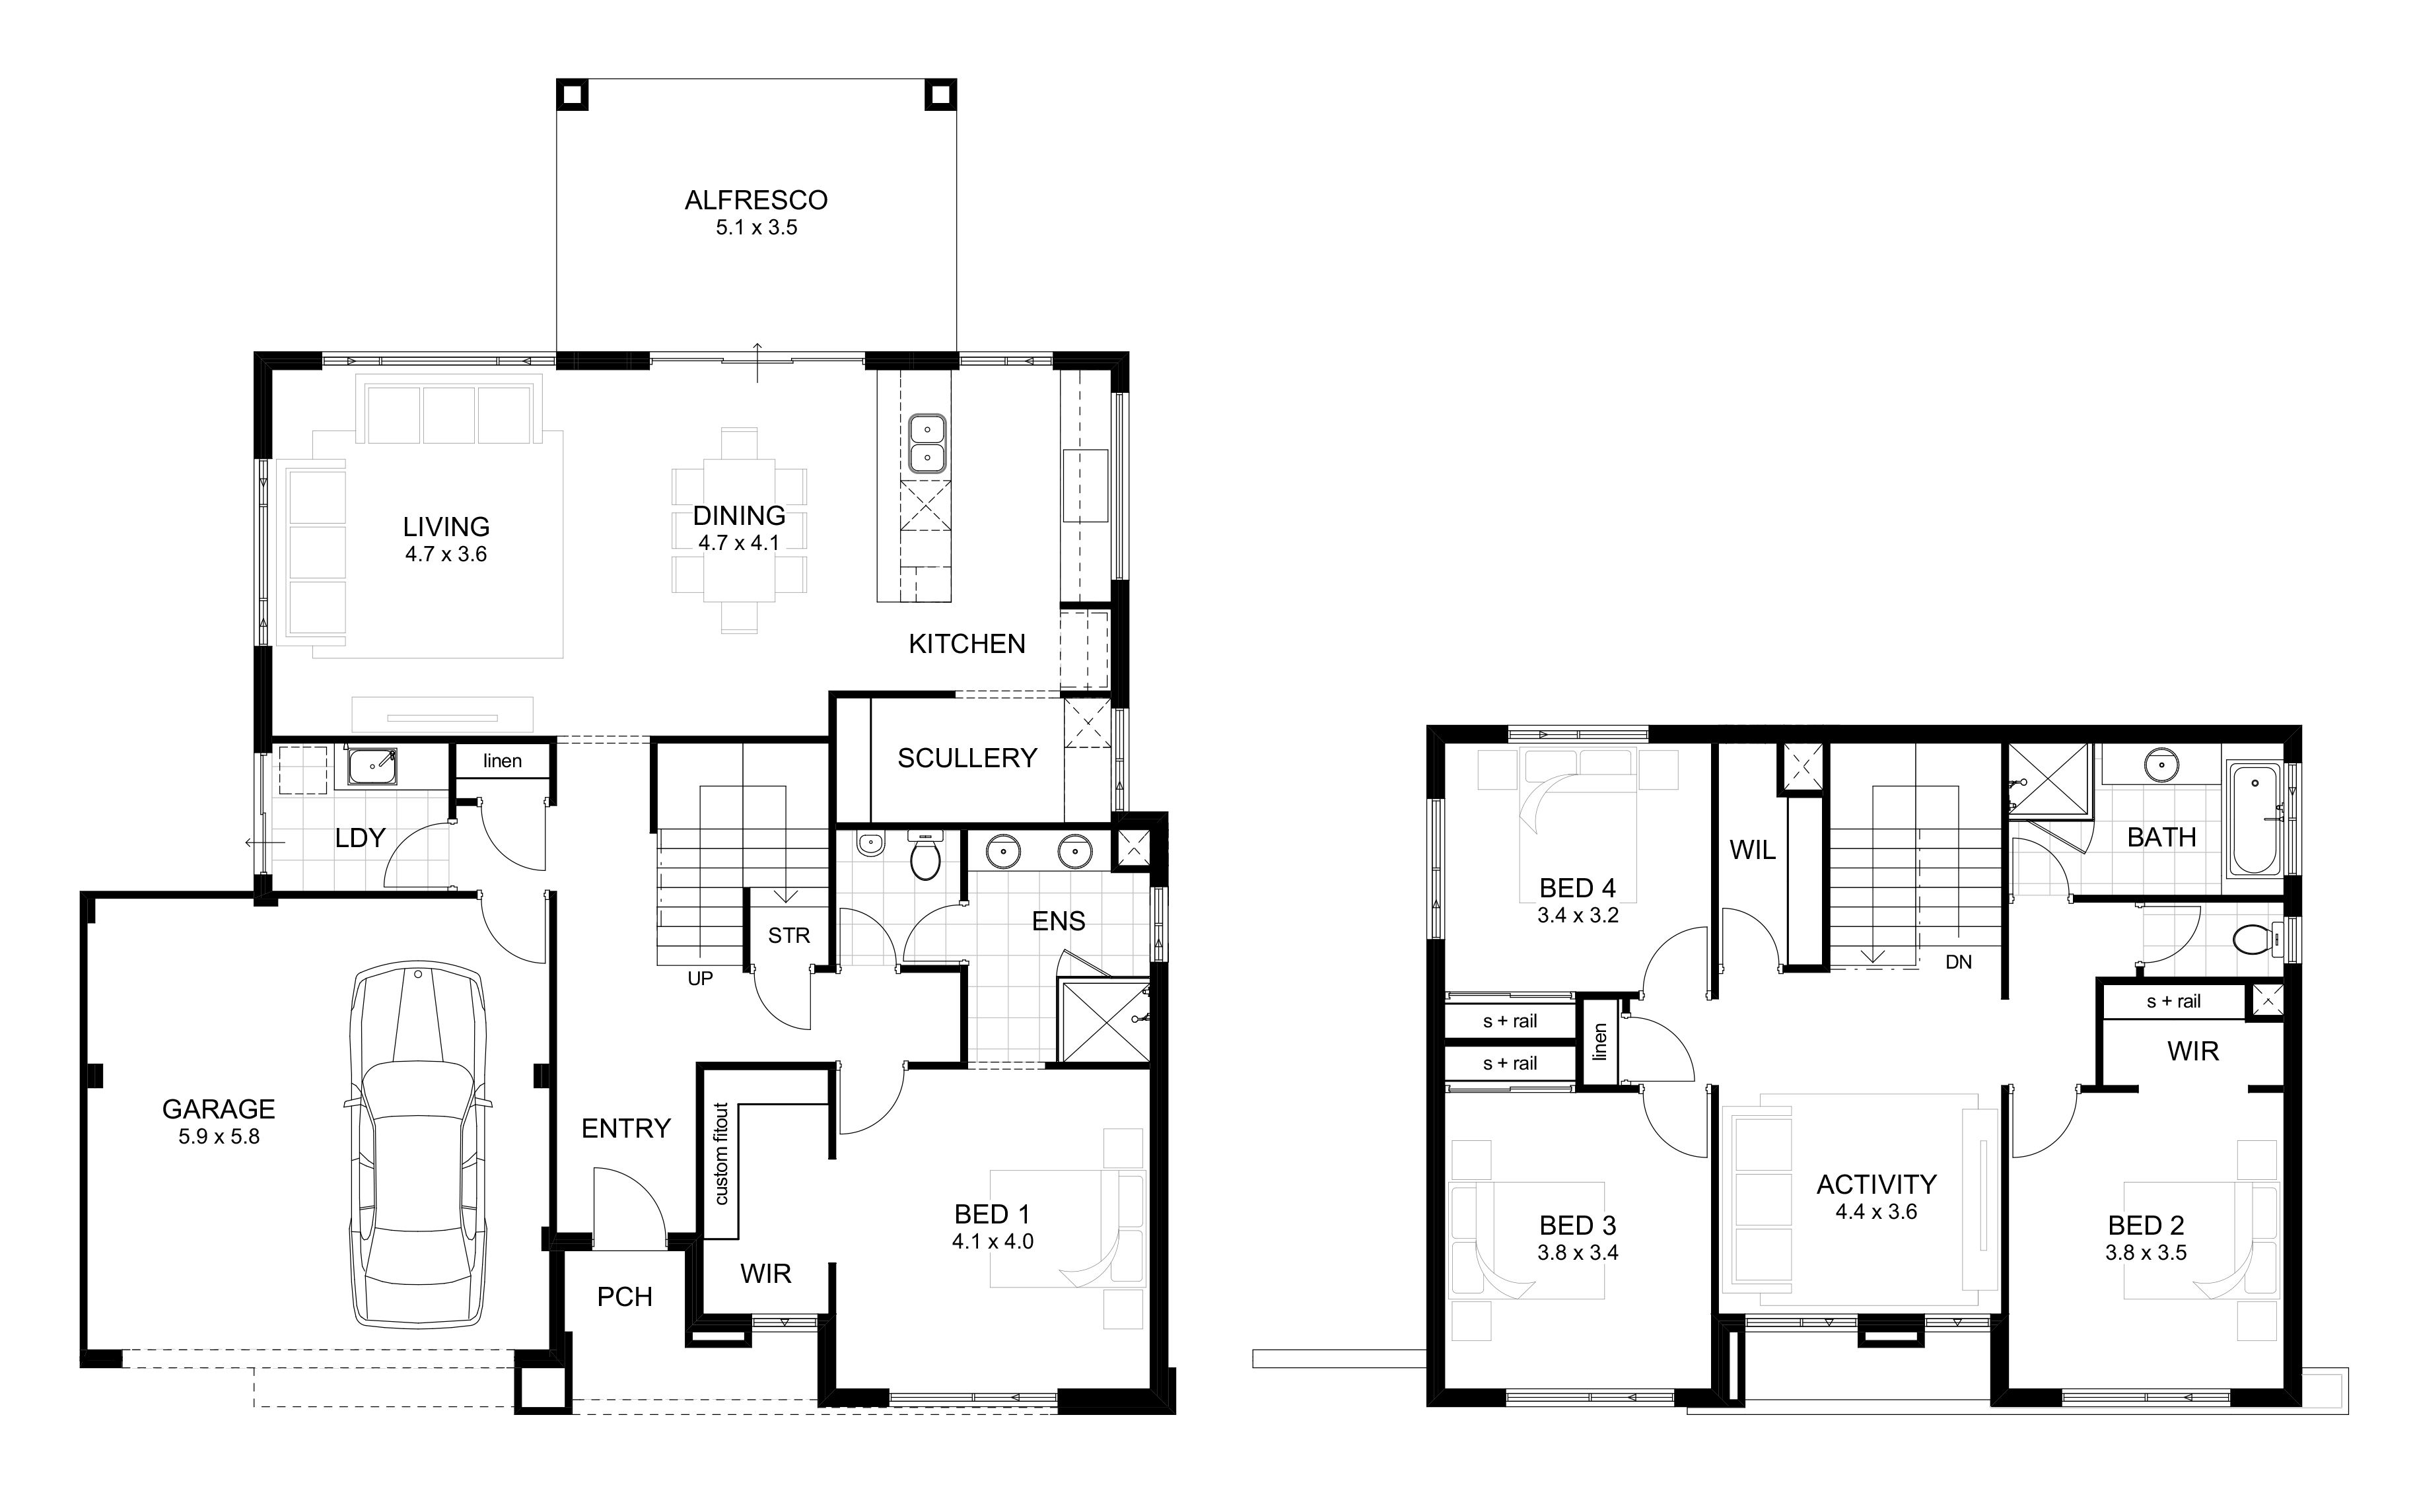 Pin By Iseni On House Plans Two Storey House Plans Mobile Home Floor Plans Modular Home Floor Plans